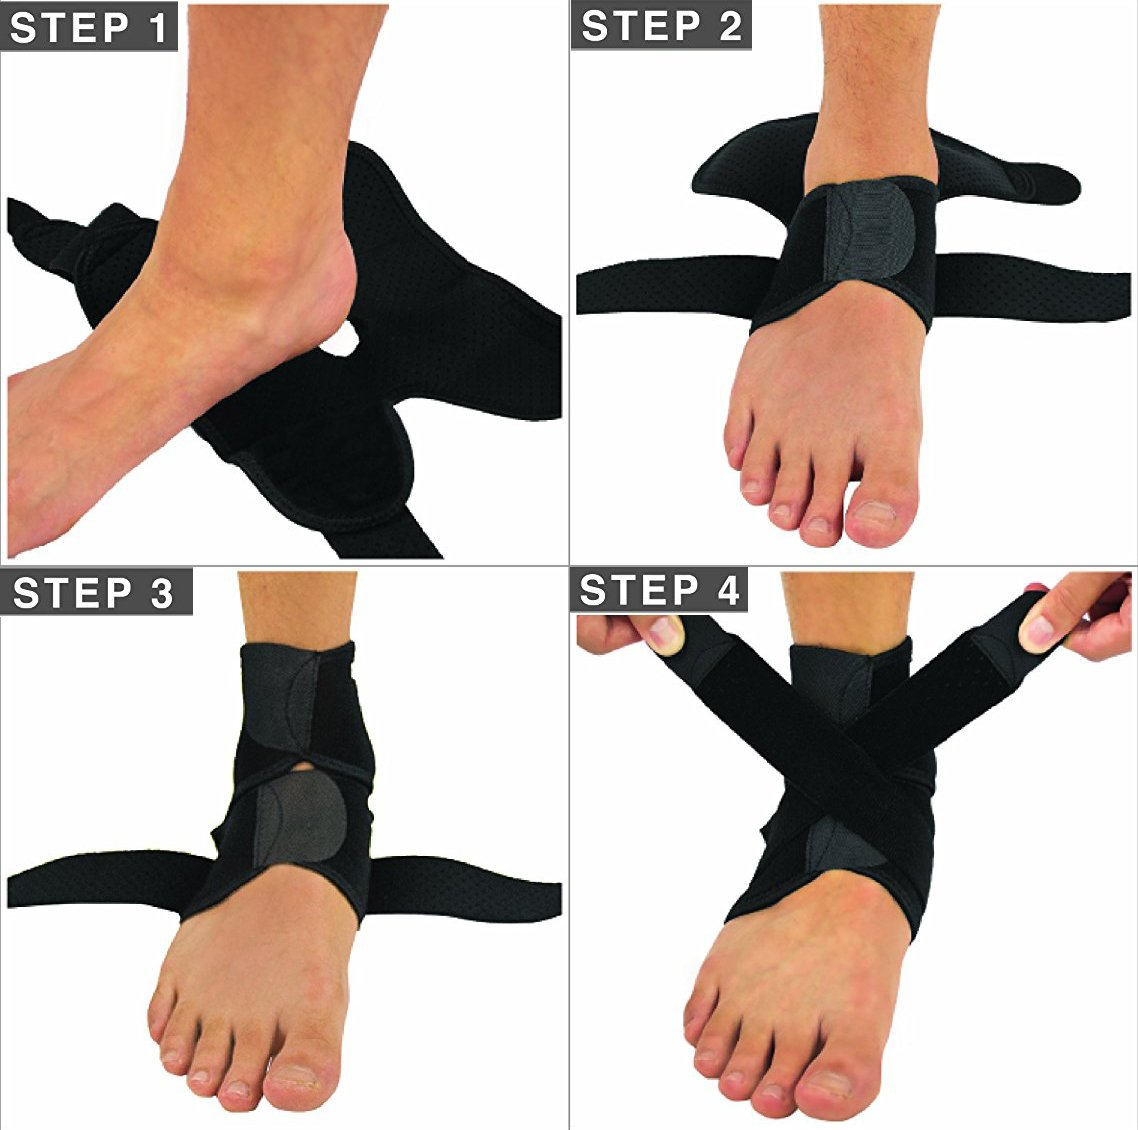 Ankle Sports Brace Support Ankle Sprains Bandage Free Adjustment Elasticity Protect Foot Ankle Breathable for Men Women 1 PACK YYVIGO (single)